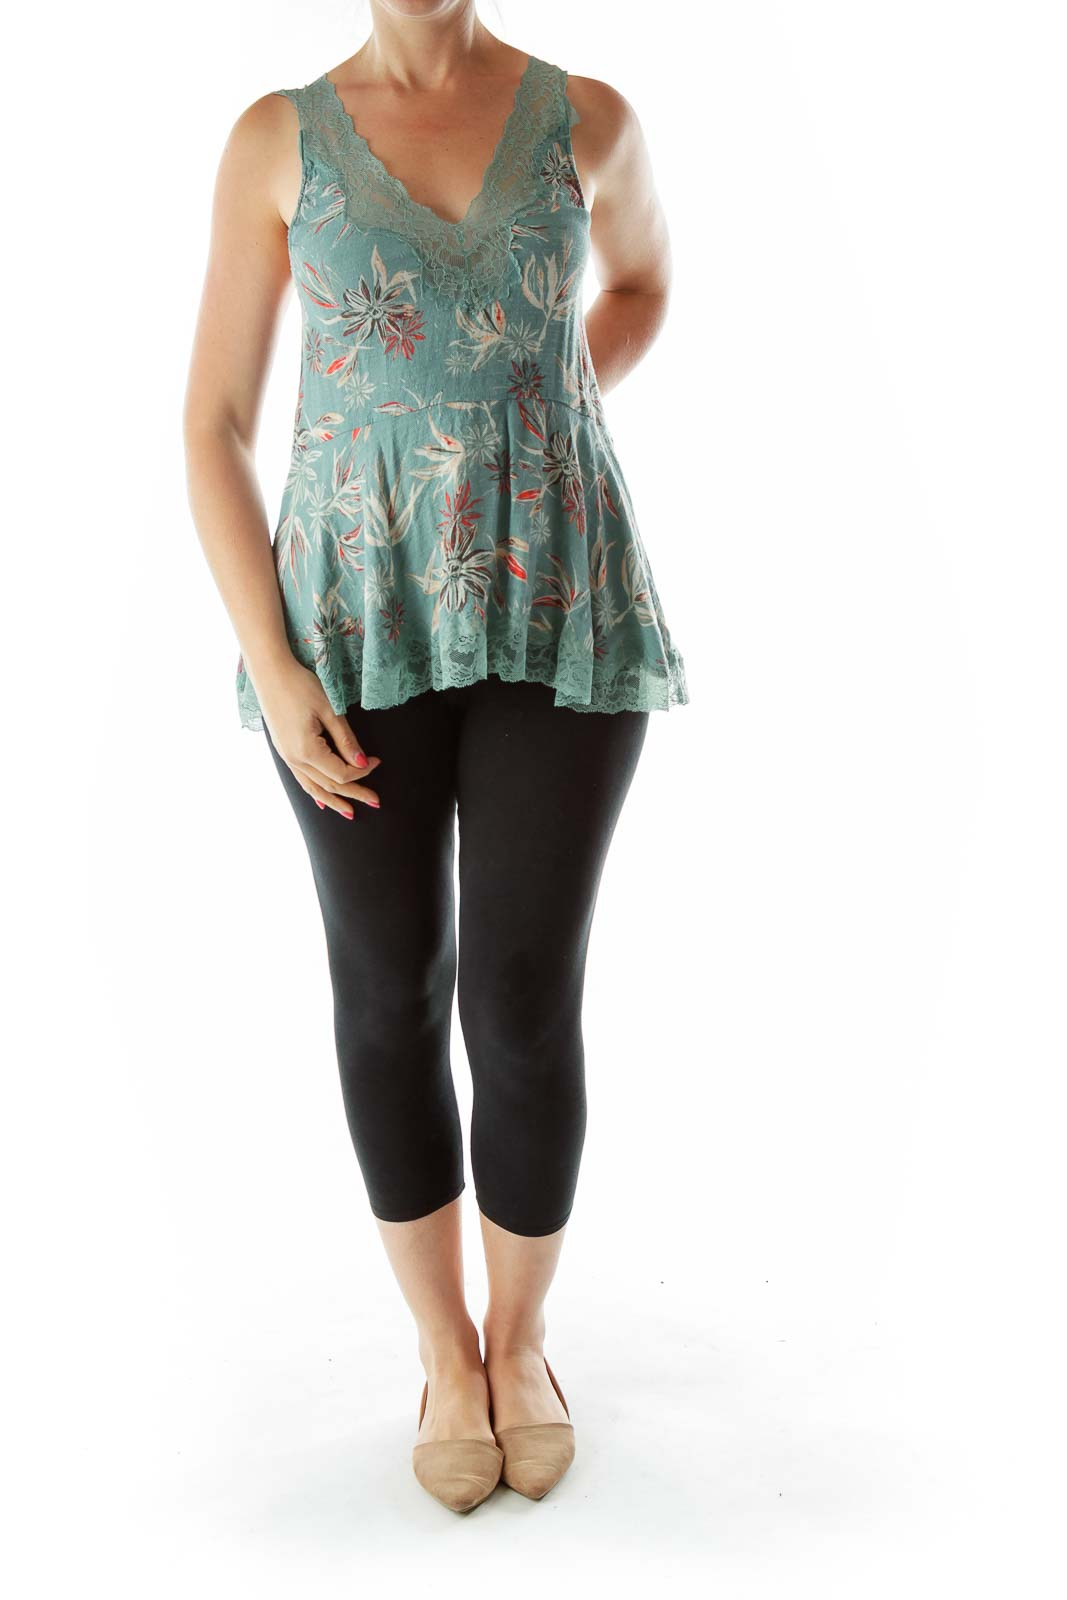 Green Lace Red Flower Top